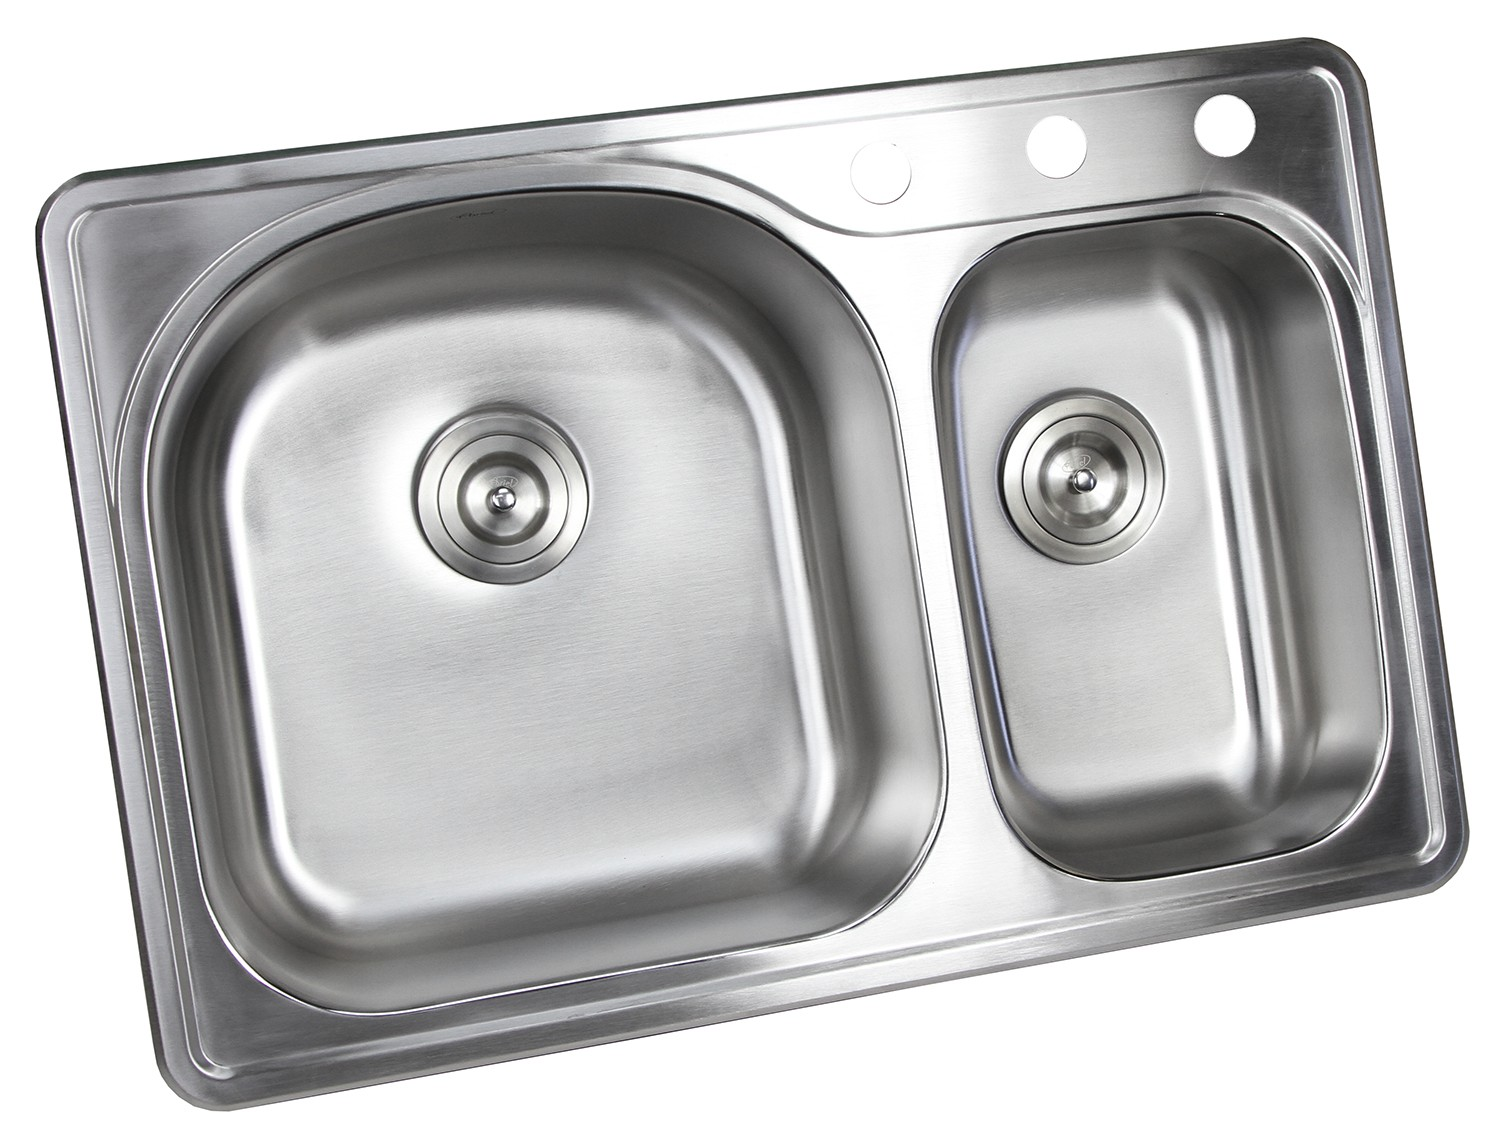 33 Inch Top Mount Drop In Stainless Steel 70 30 Double Bowl Kitchen Sink With 3 Faucet Holes 18 Gauge With Accessories